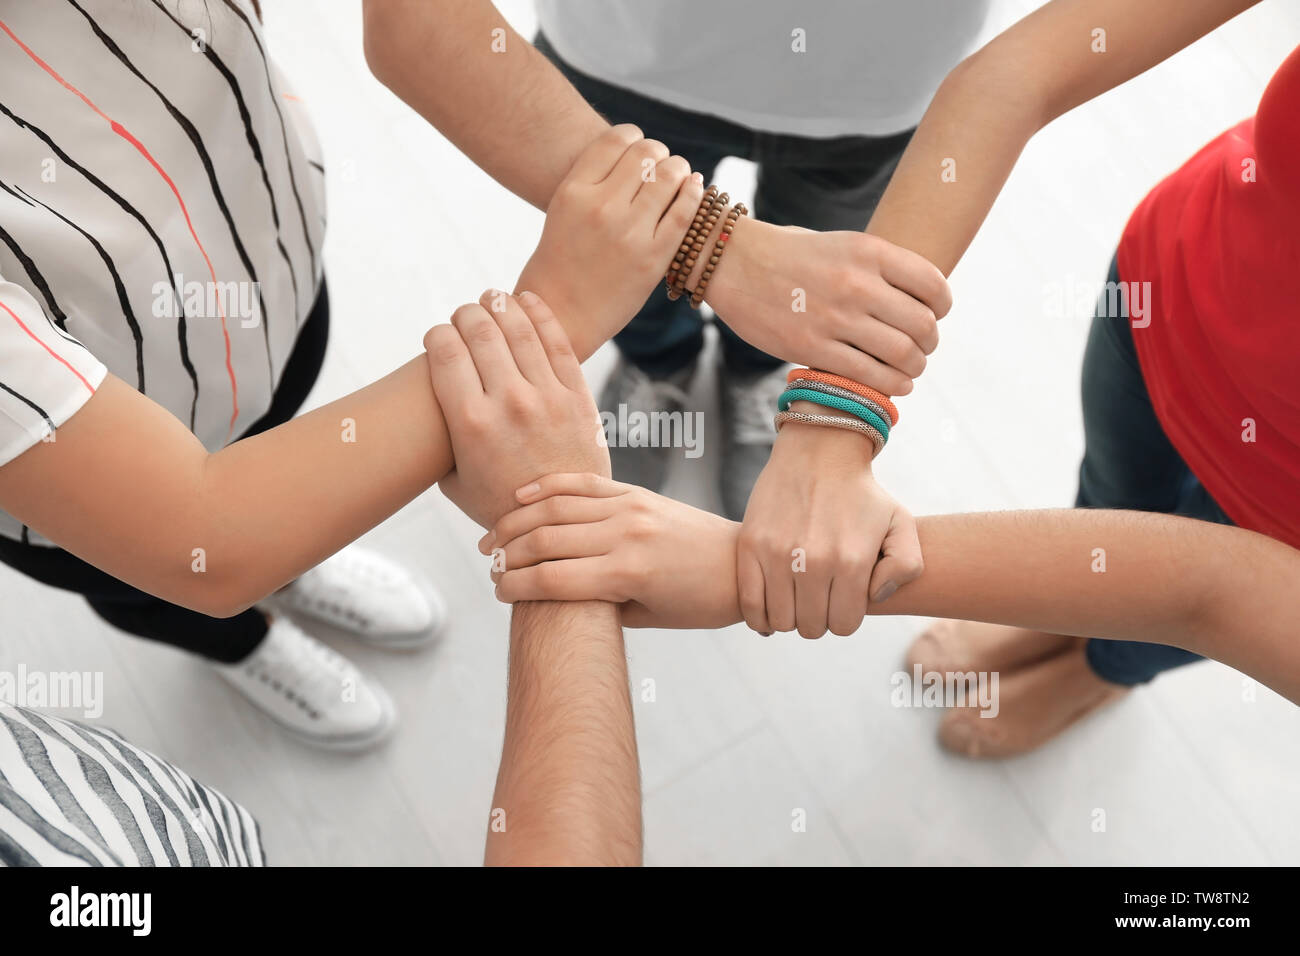 People Holding Hands Together As Symbol Of Unity Stock Photo 256506574 Alamy